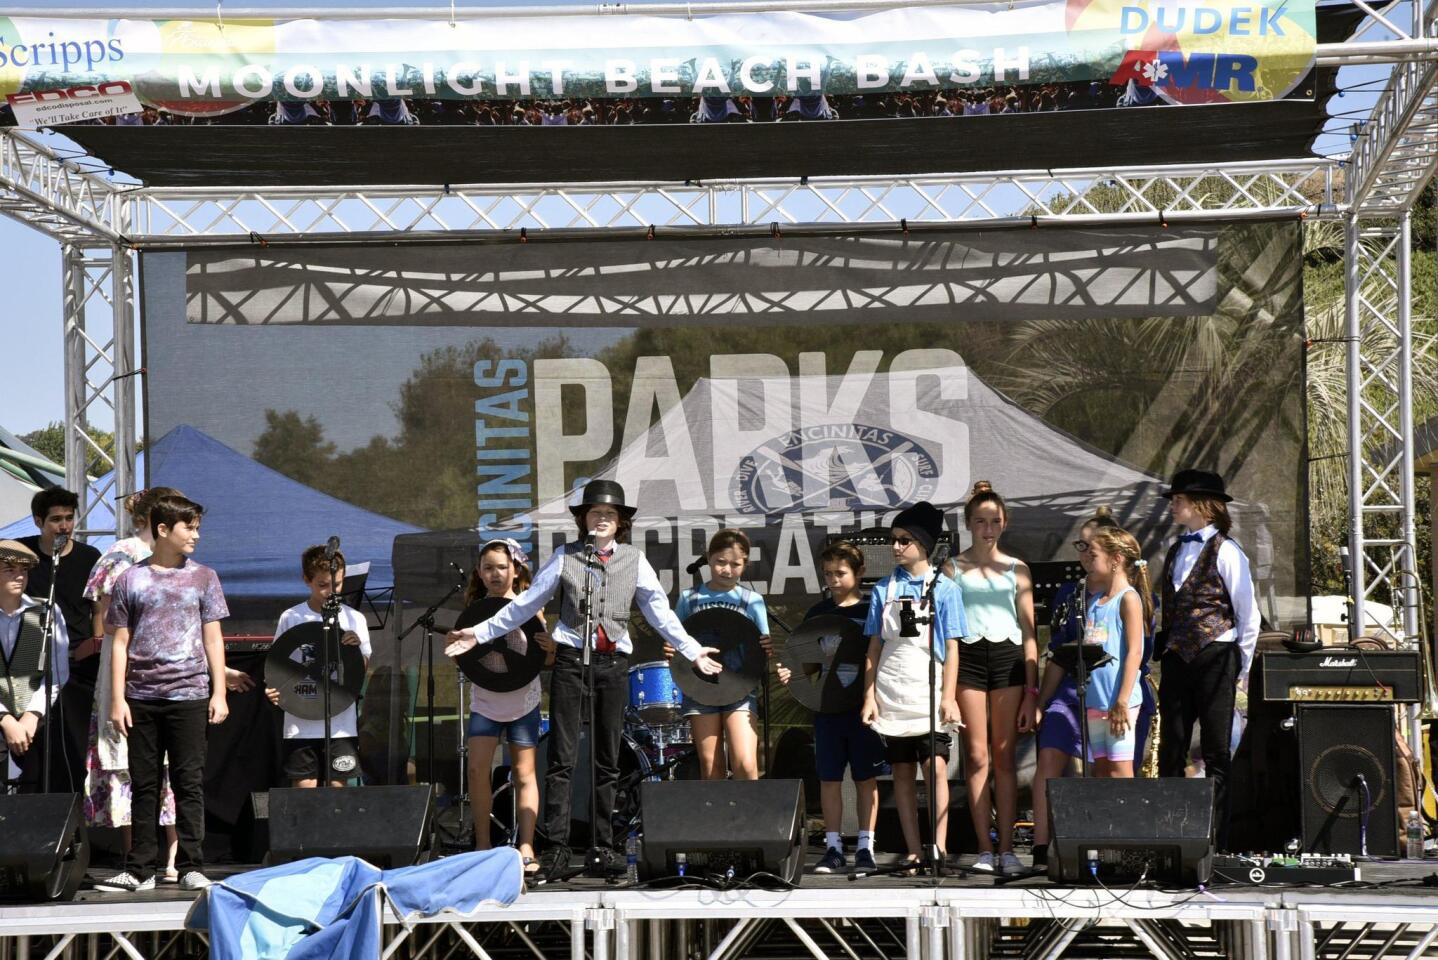 Park Dale Players were the opening act at the festival